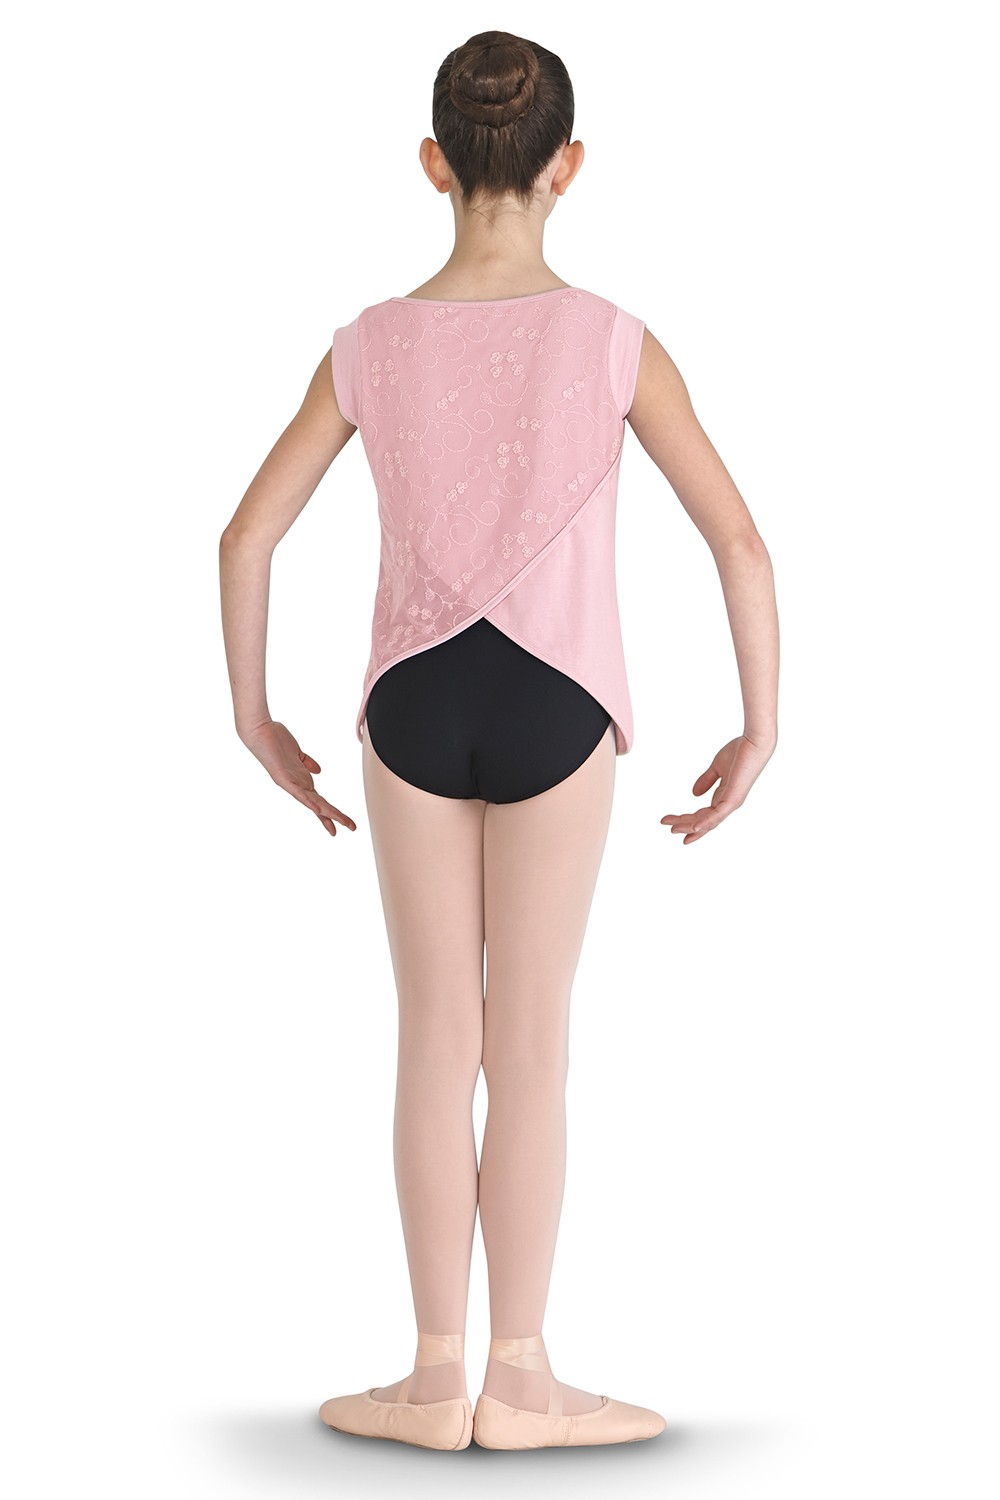 Arundo Children's Dance Tops